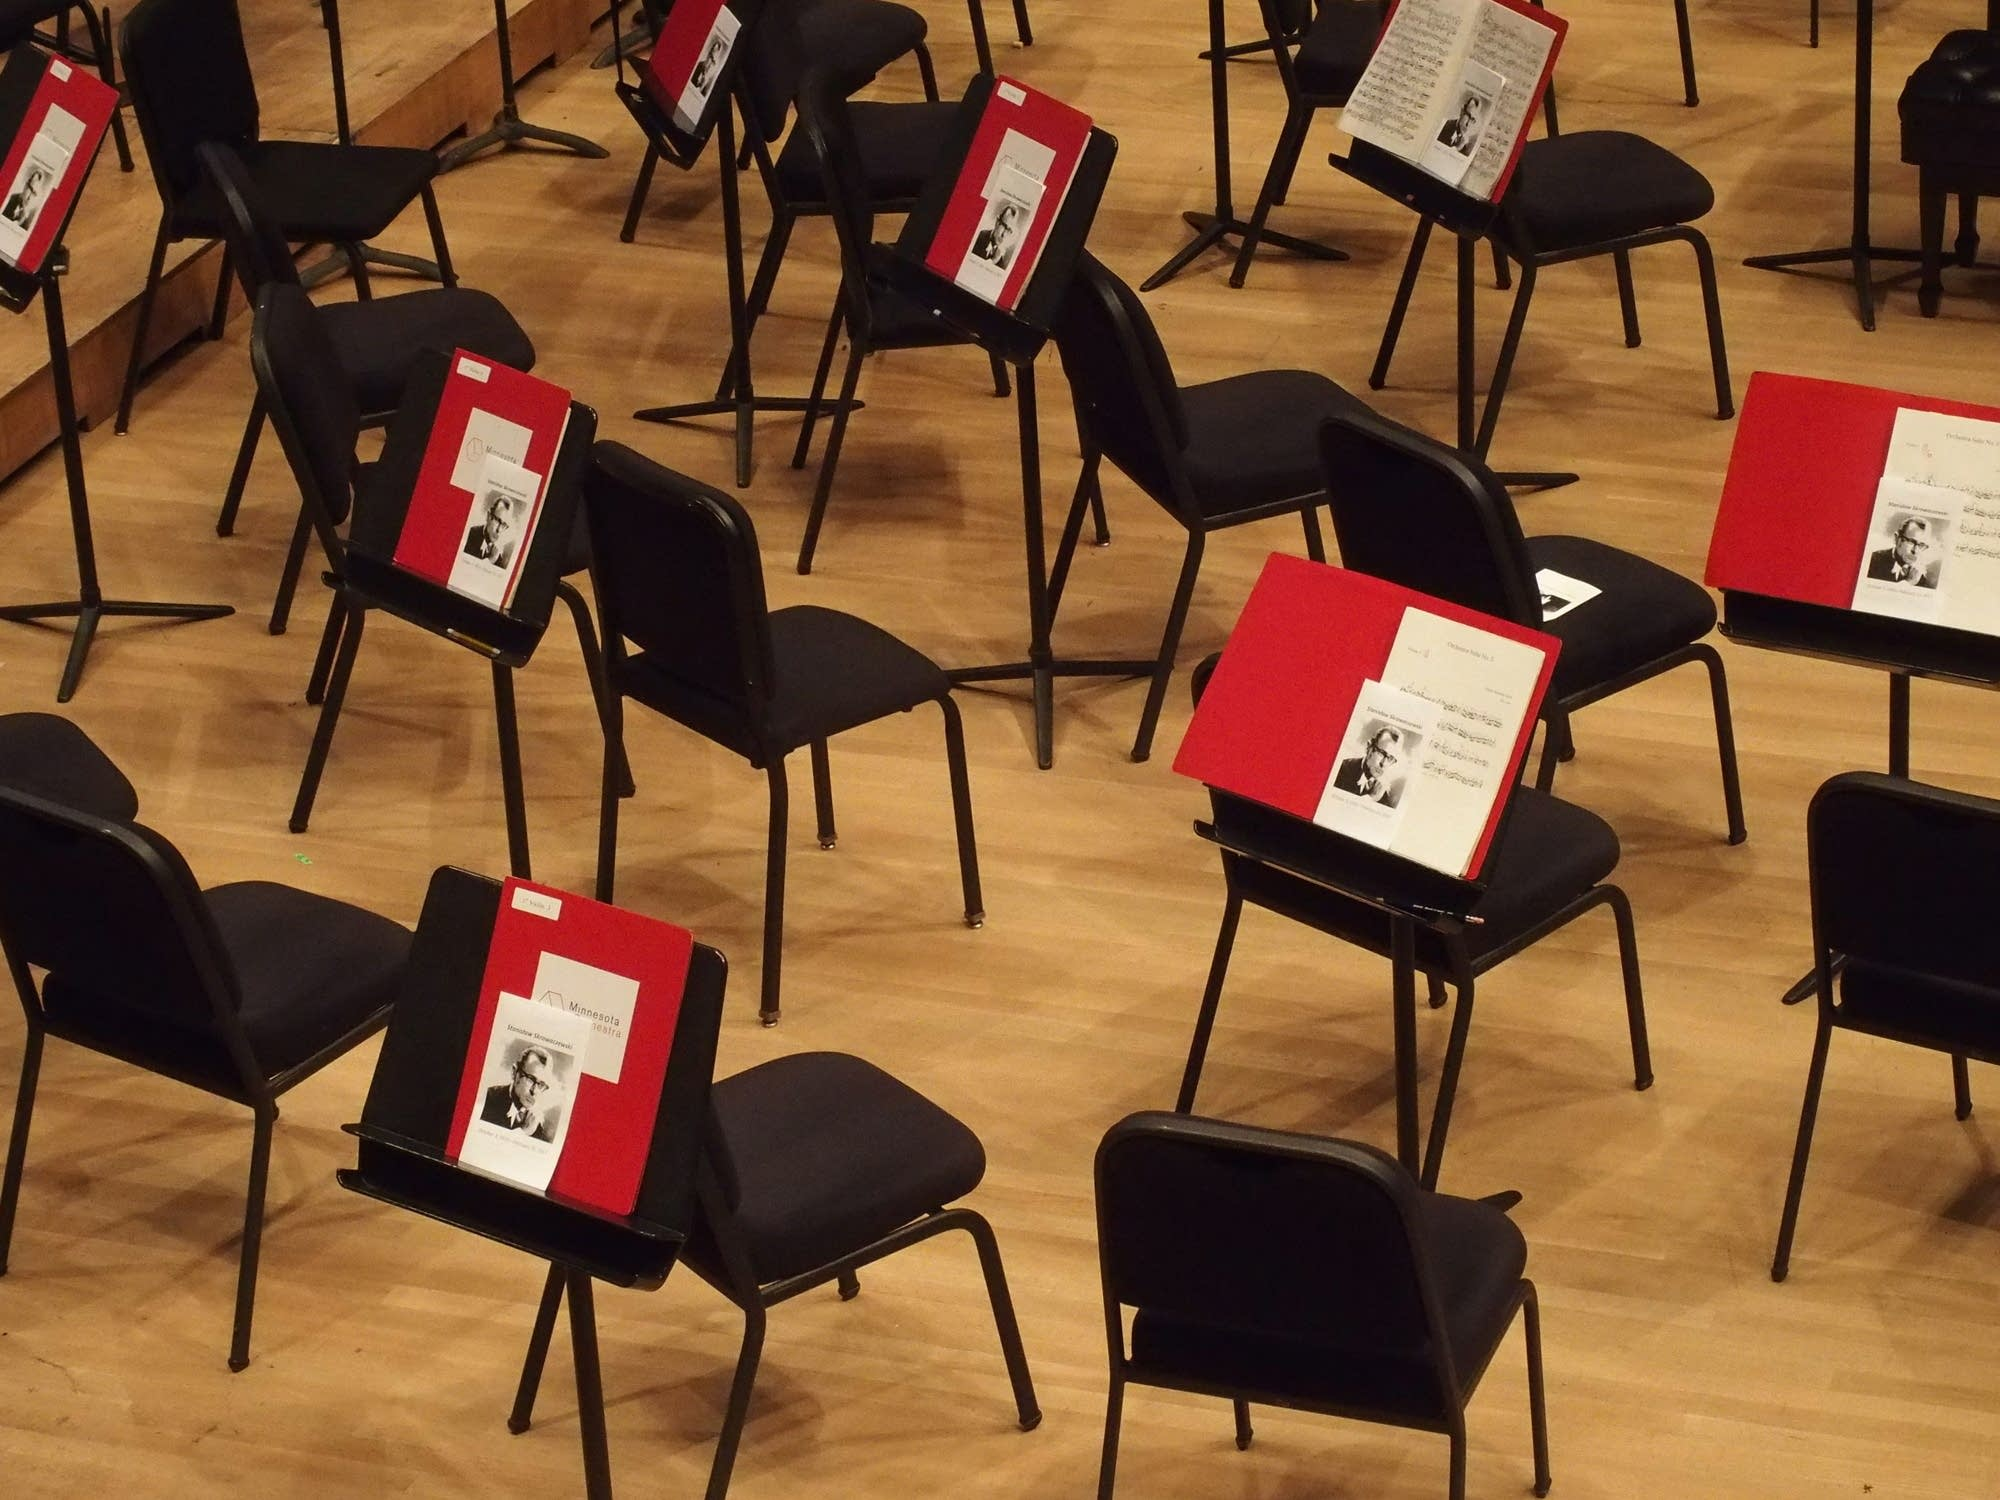 Music stands at Orchestra Hall with Skrowaczewski program